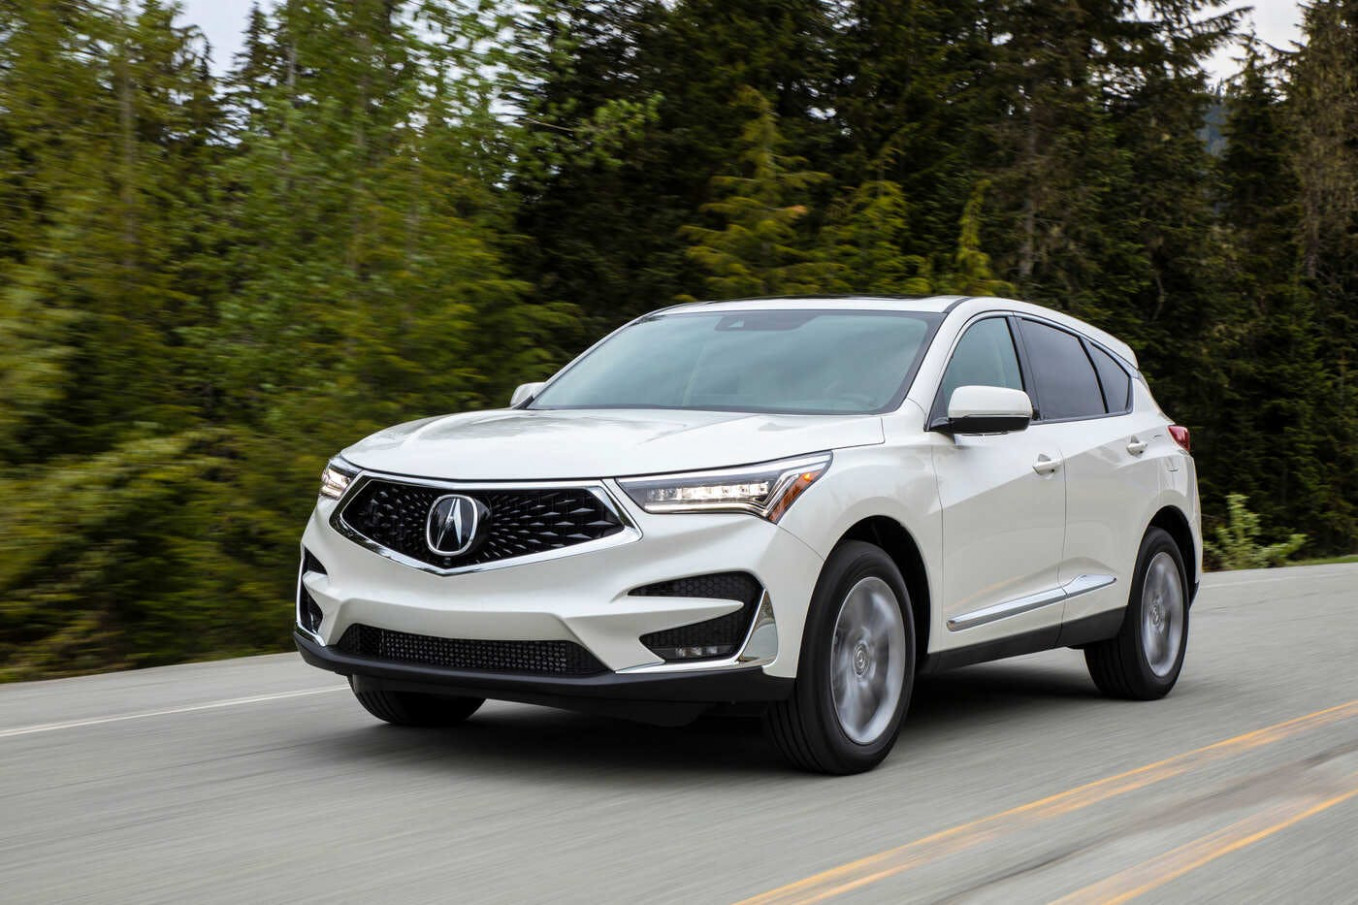 9 Acura RDX Comparisons, Reviews & Pictures | TrueCar - 2020 acura rdx quarter mile